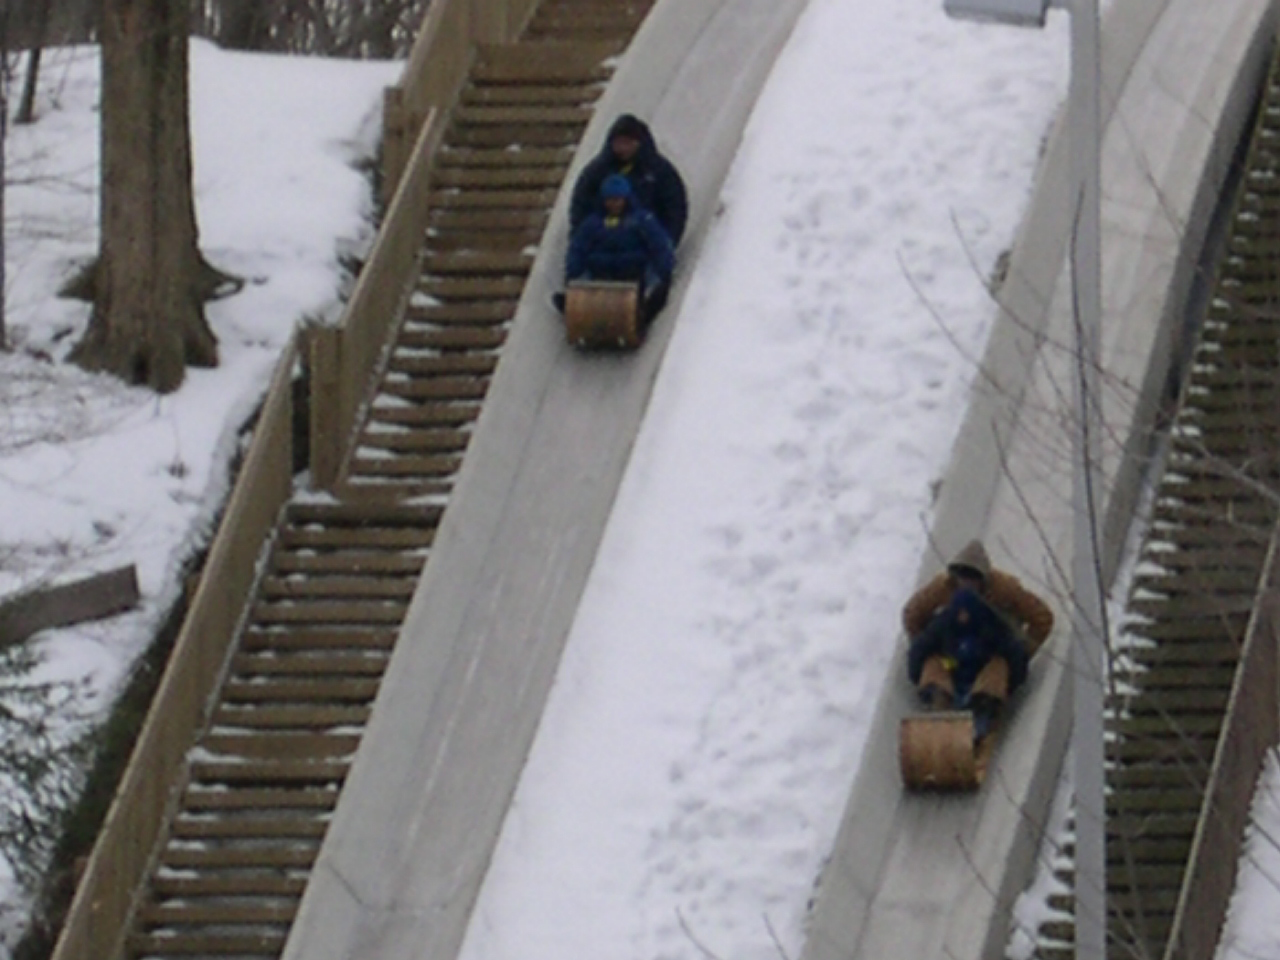 TAKE ADVANTAGE OF SPECIAL HOLIDAY HOURS AND SWEETHEART DEALS AT CLEVELAND METROPARKS TOBOGGAN CHUTES